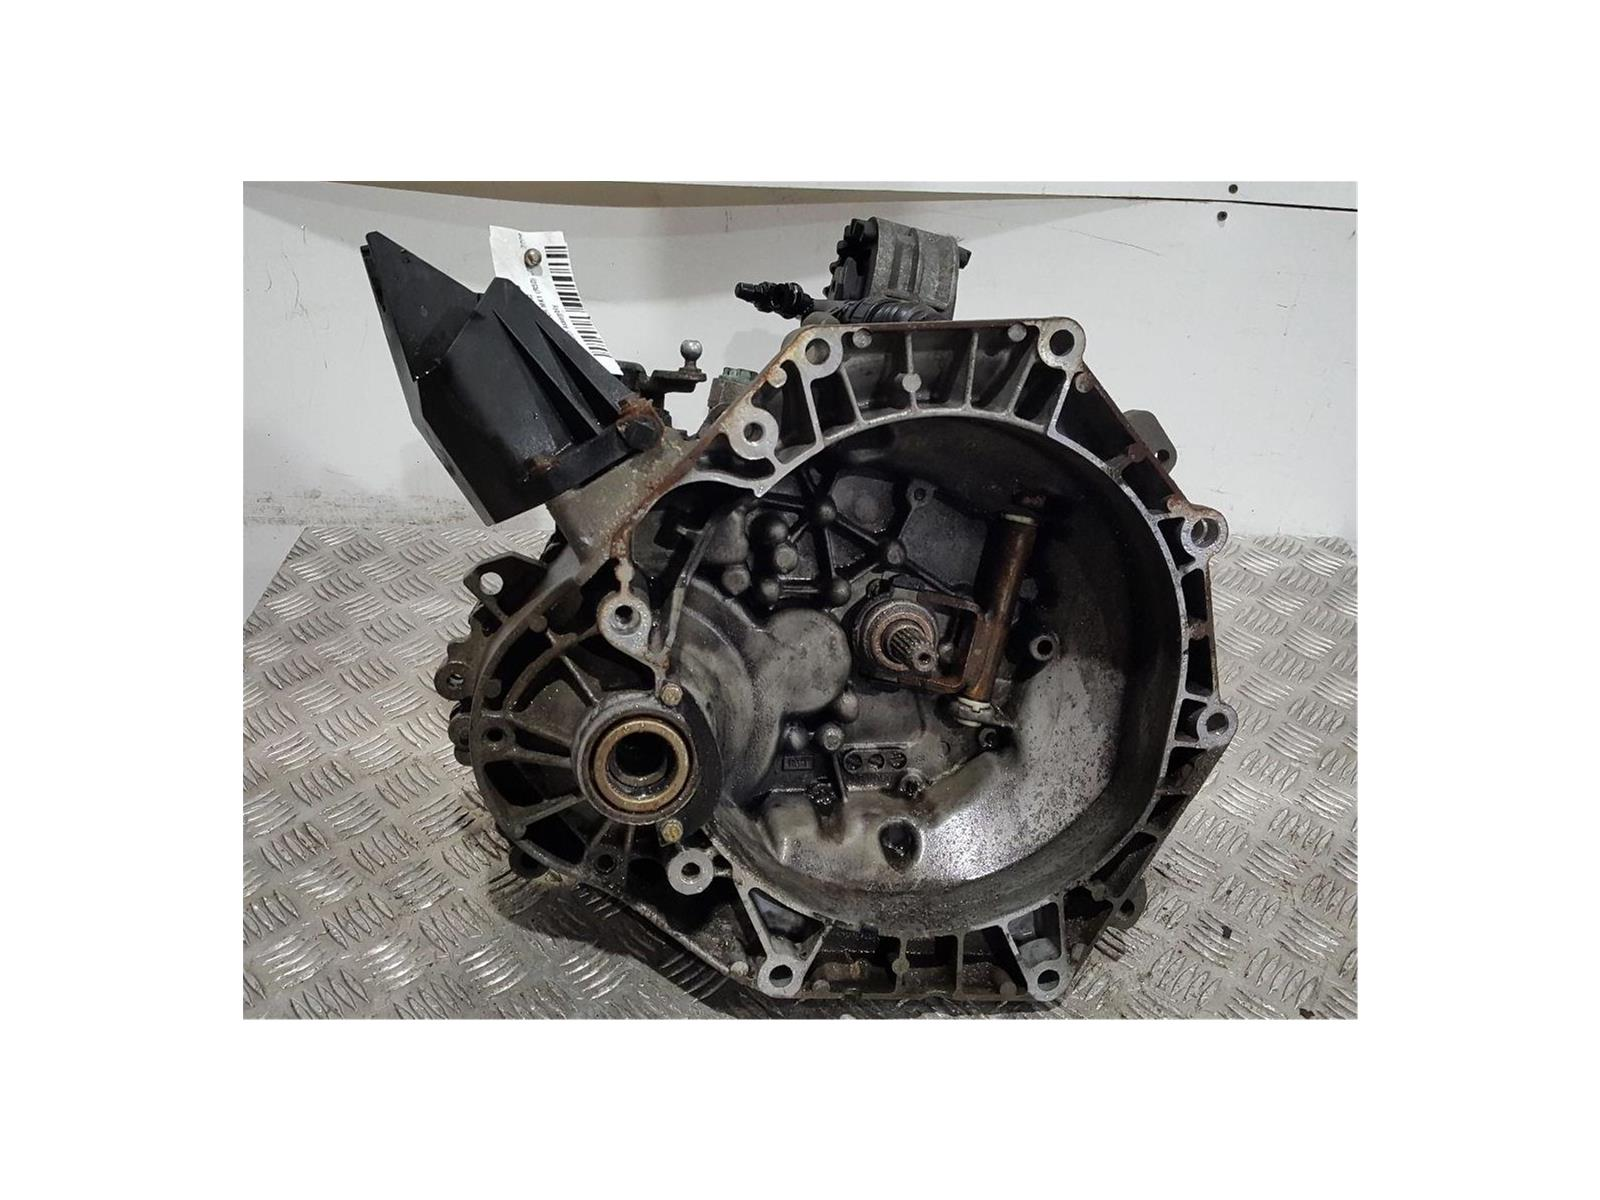 MINI HATCH ONE MK1 (R50) 2001 TO 2006 - 1.6 PETROL 5 Speed  Gearbox Assembly